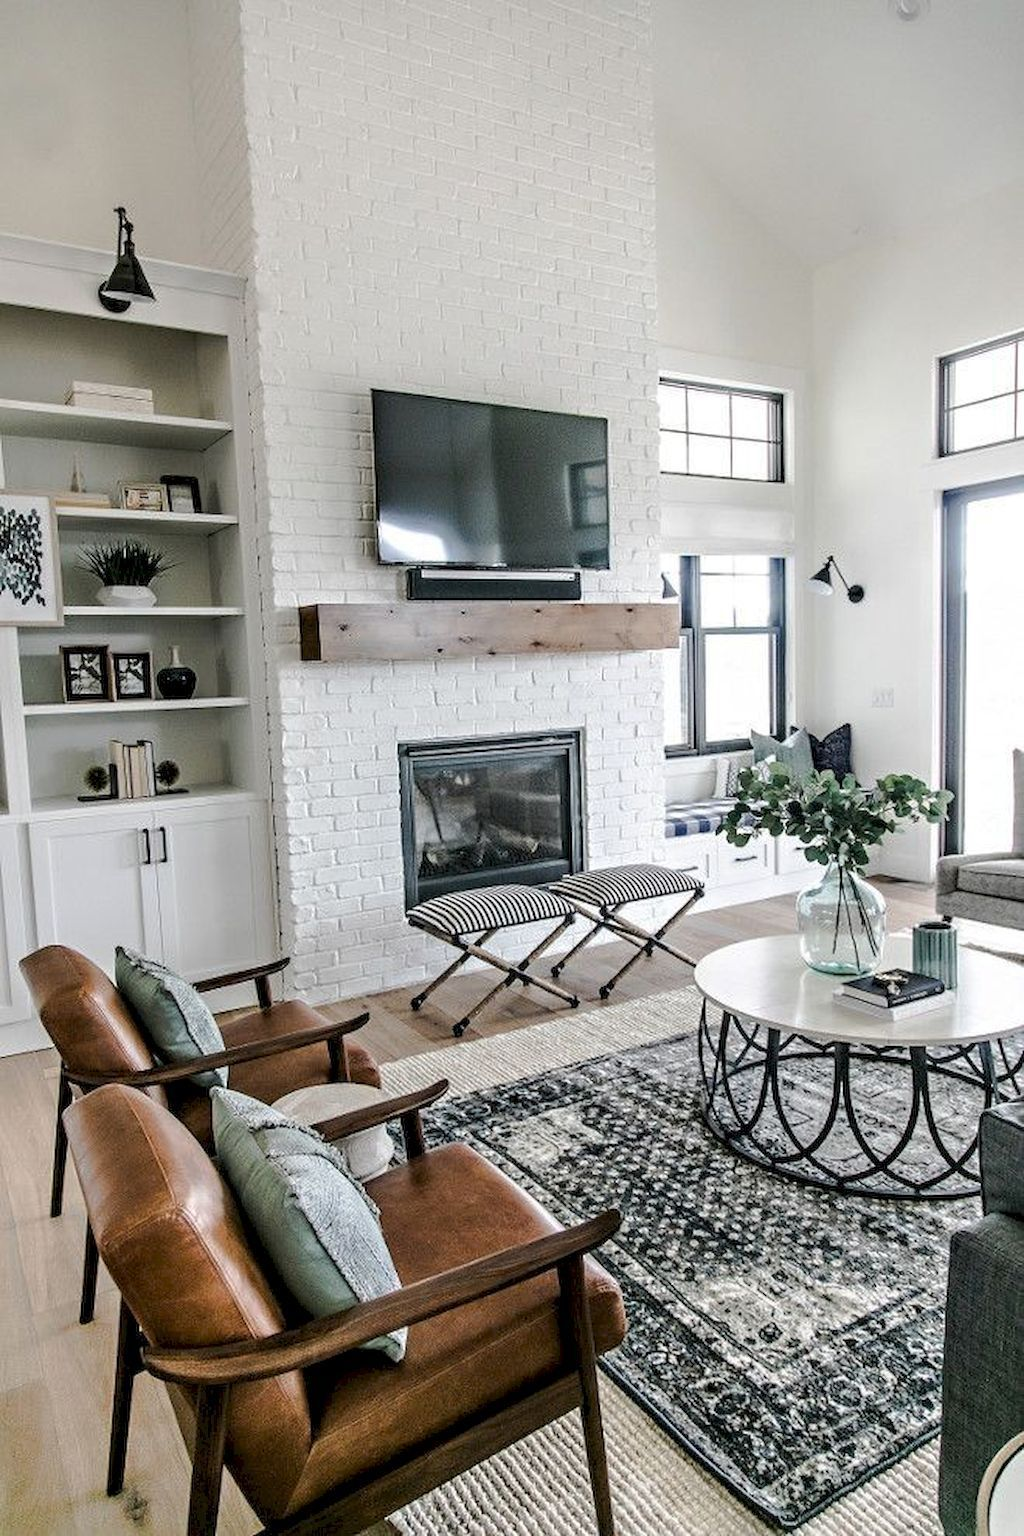 Rustic farmhouse living room design and decor ideas (32) | Rustic ...